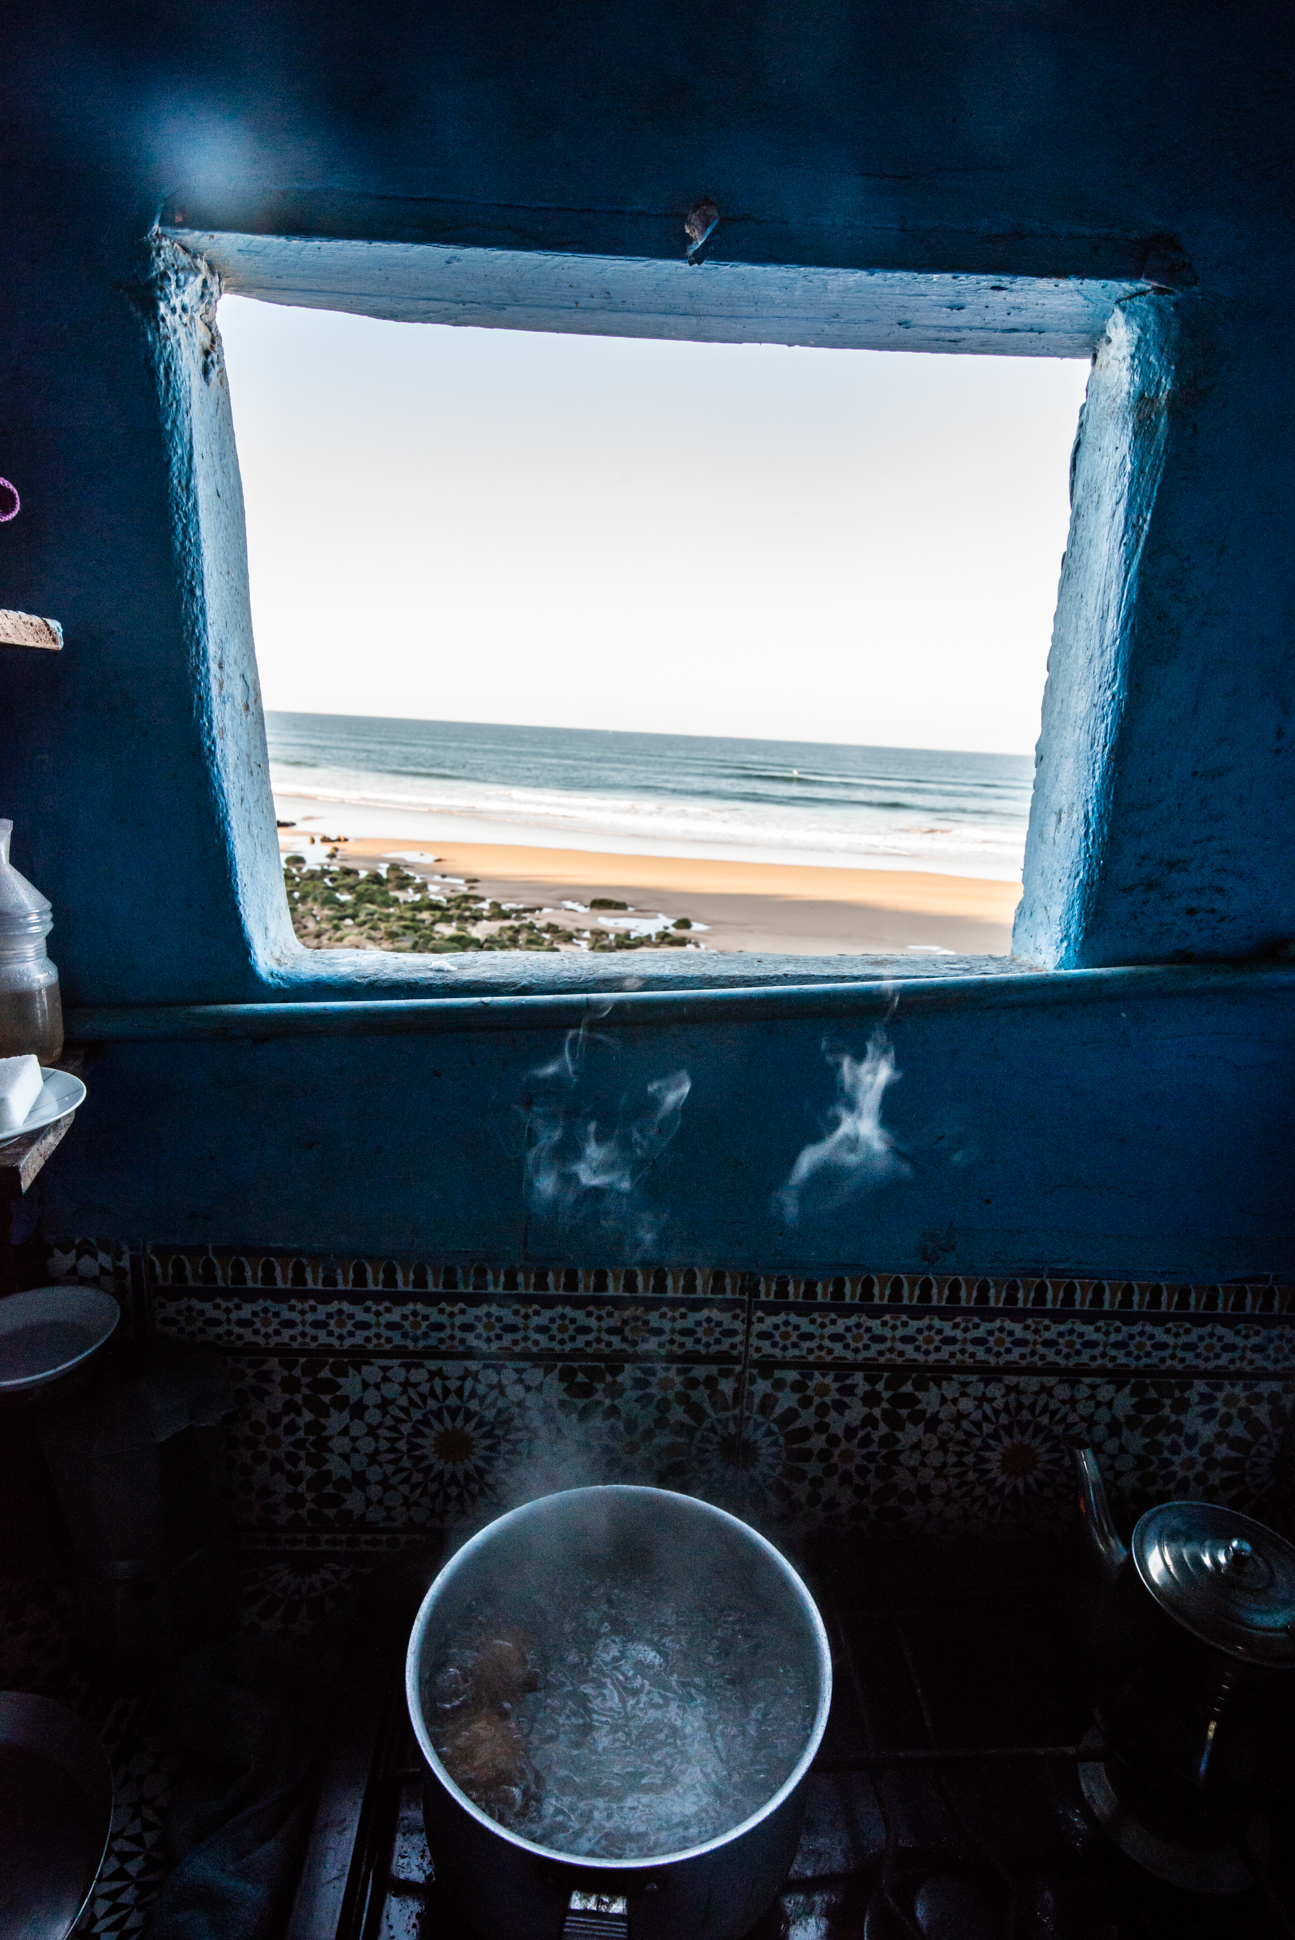 Kitchen with a view on the ocean. Beach life. Boiling eggs